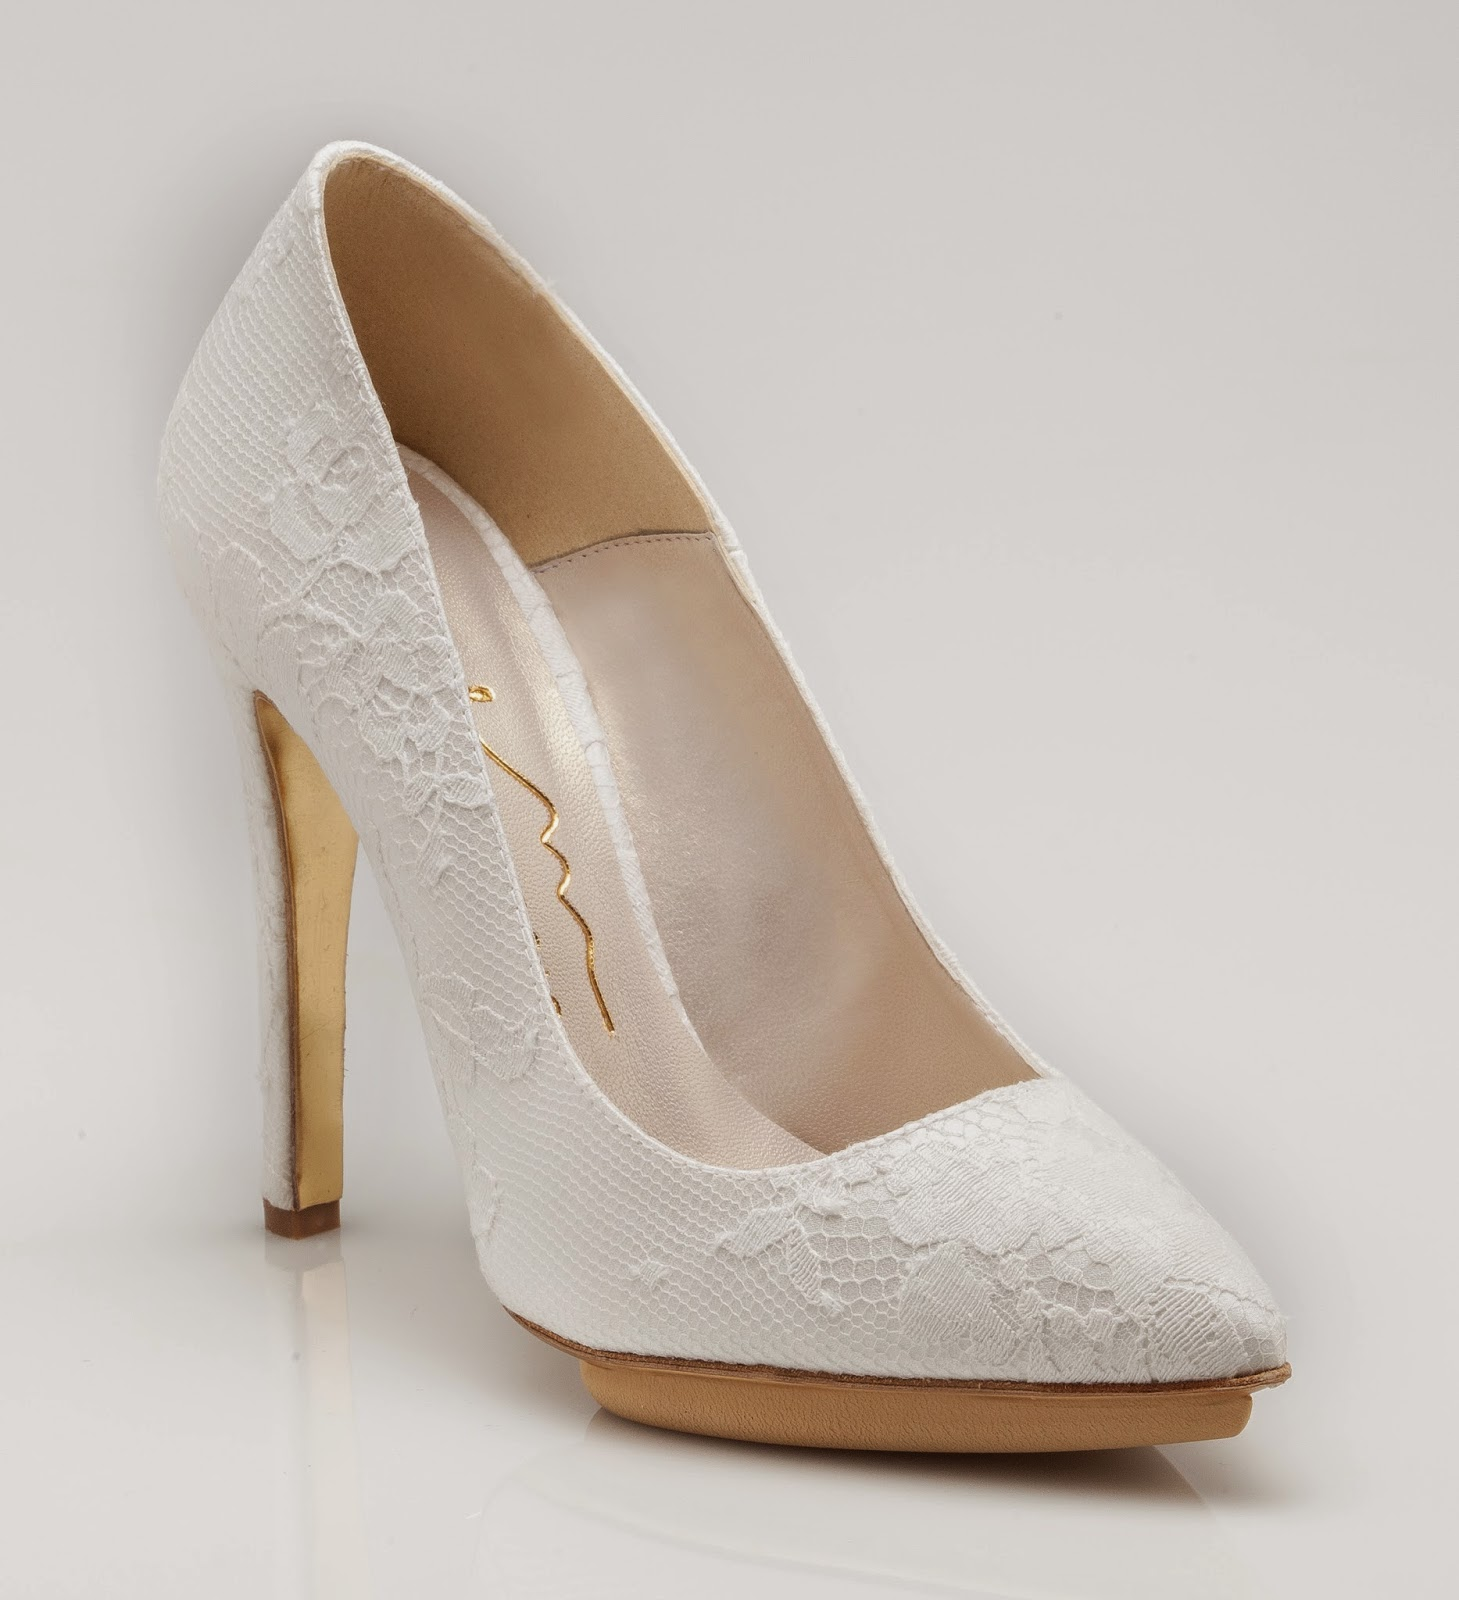 6e999ad95ce4b La Enzo Miccio Bridal Collection LUXURY SHOES è prodotta e distribuita da  Nicole Fashion Group